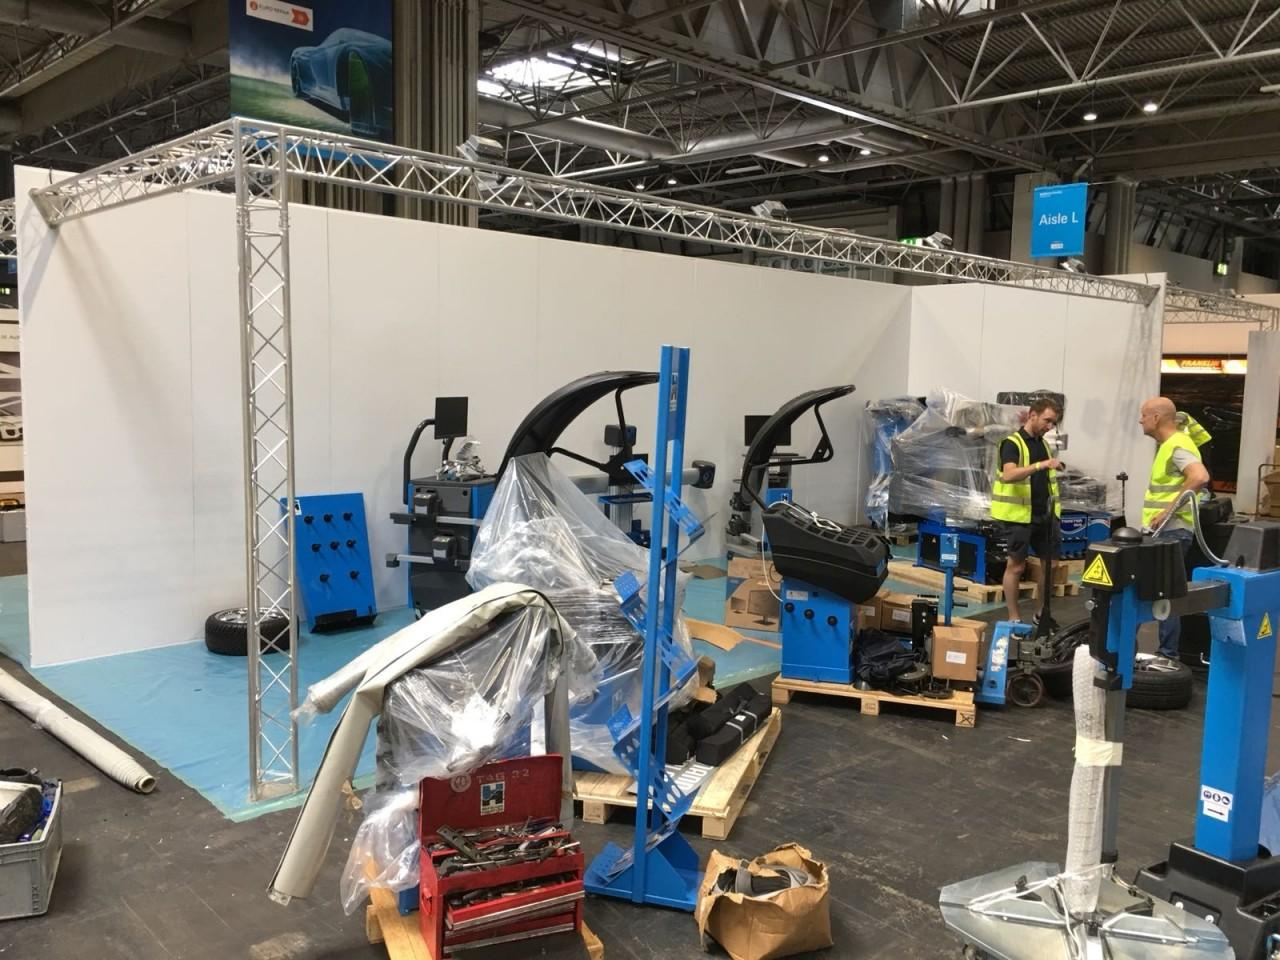 Arrival of Equipment at Automechanika 2018